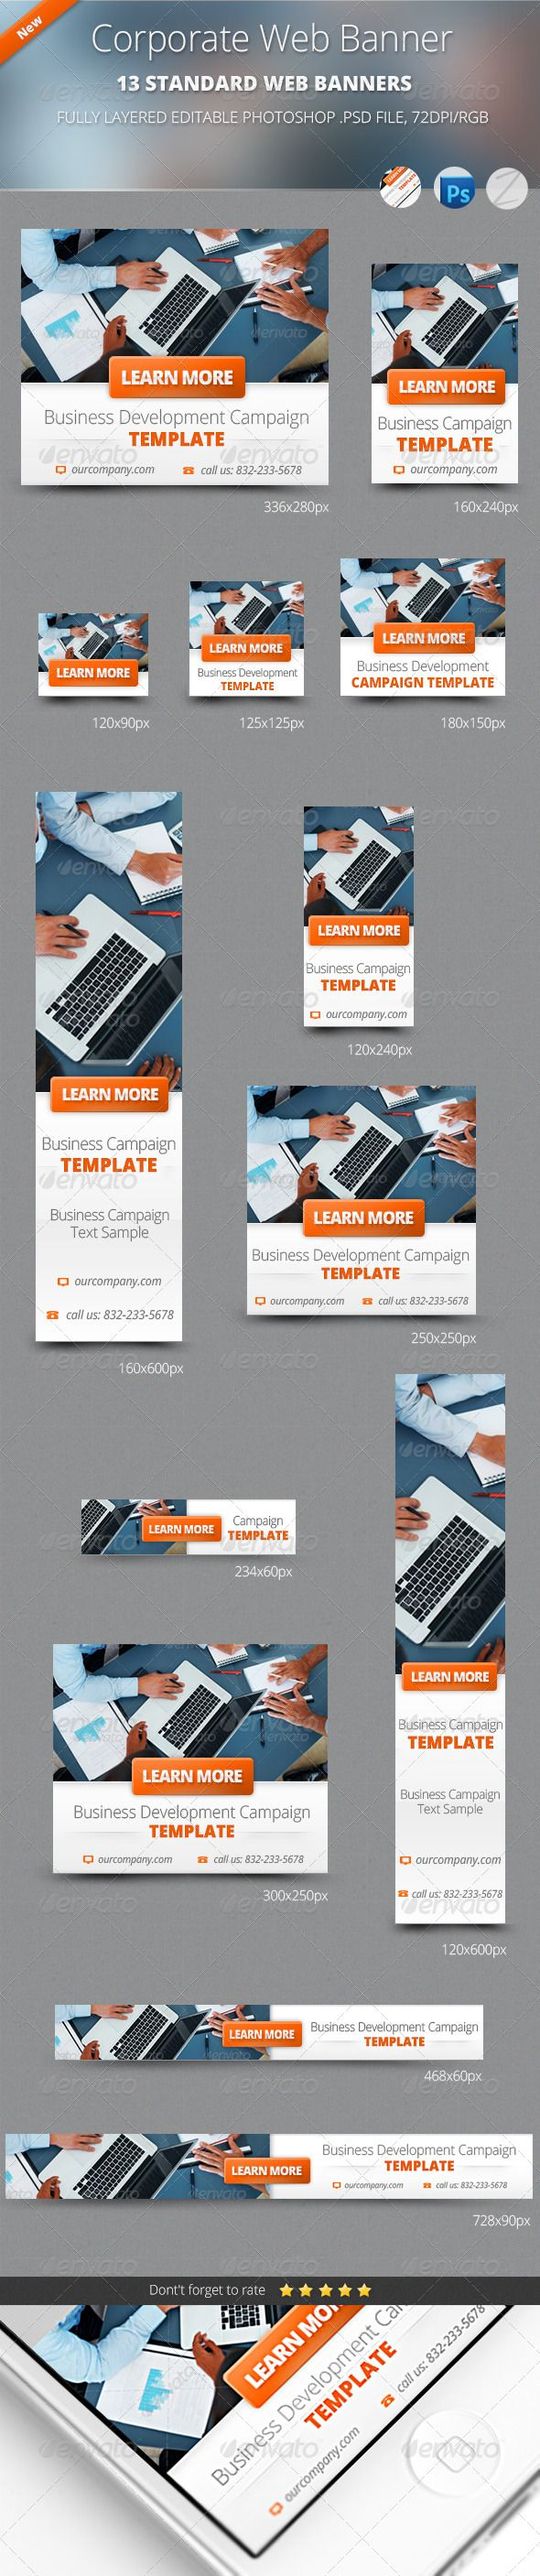 Business Corporate Web Banners Template PSD | Buy and Download: http://graphicriver.net/item/business-corporate-web-banners/4880945?WT.ac=category_thumb&WT.z_author=zokamaric&ref=ksioks